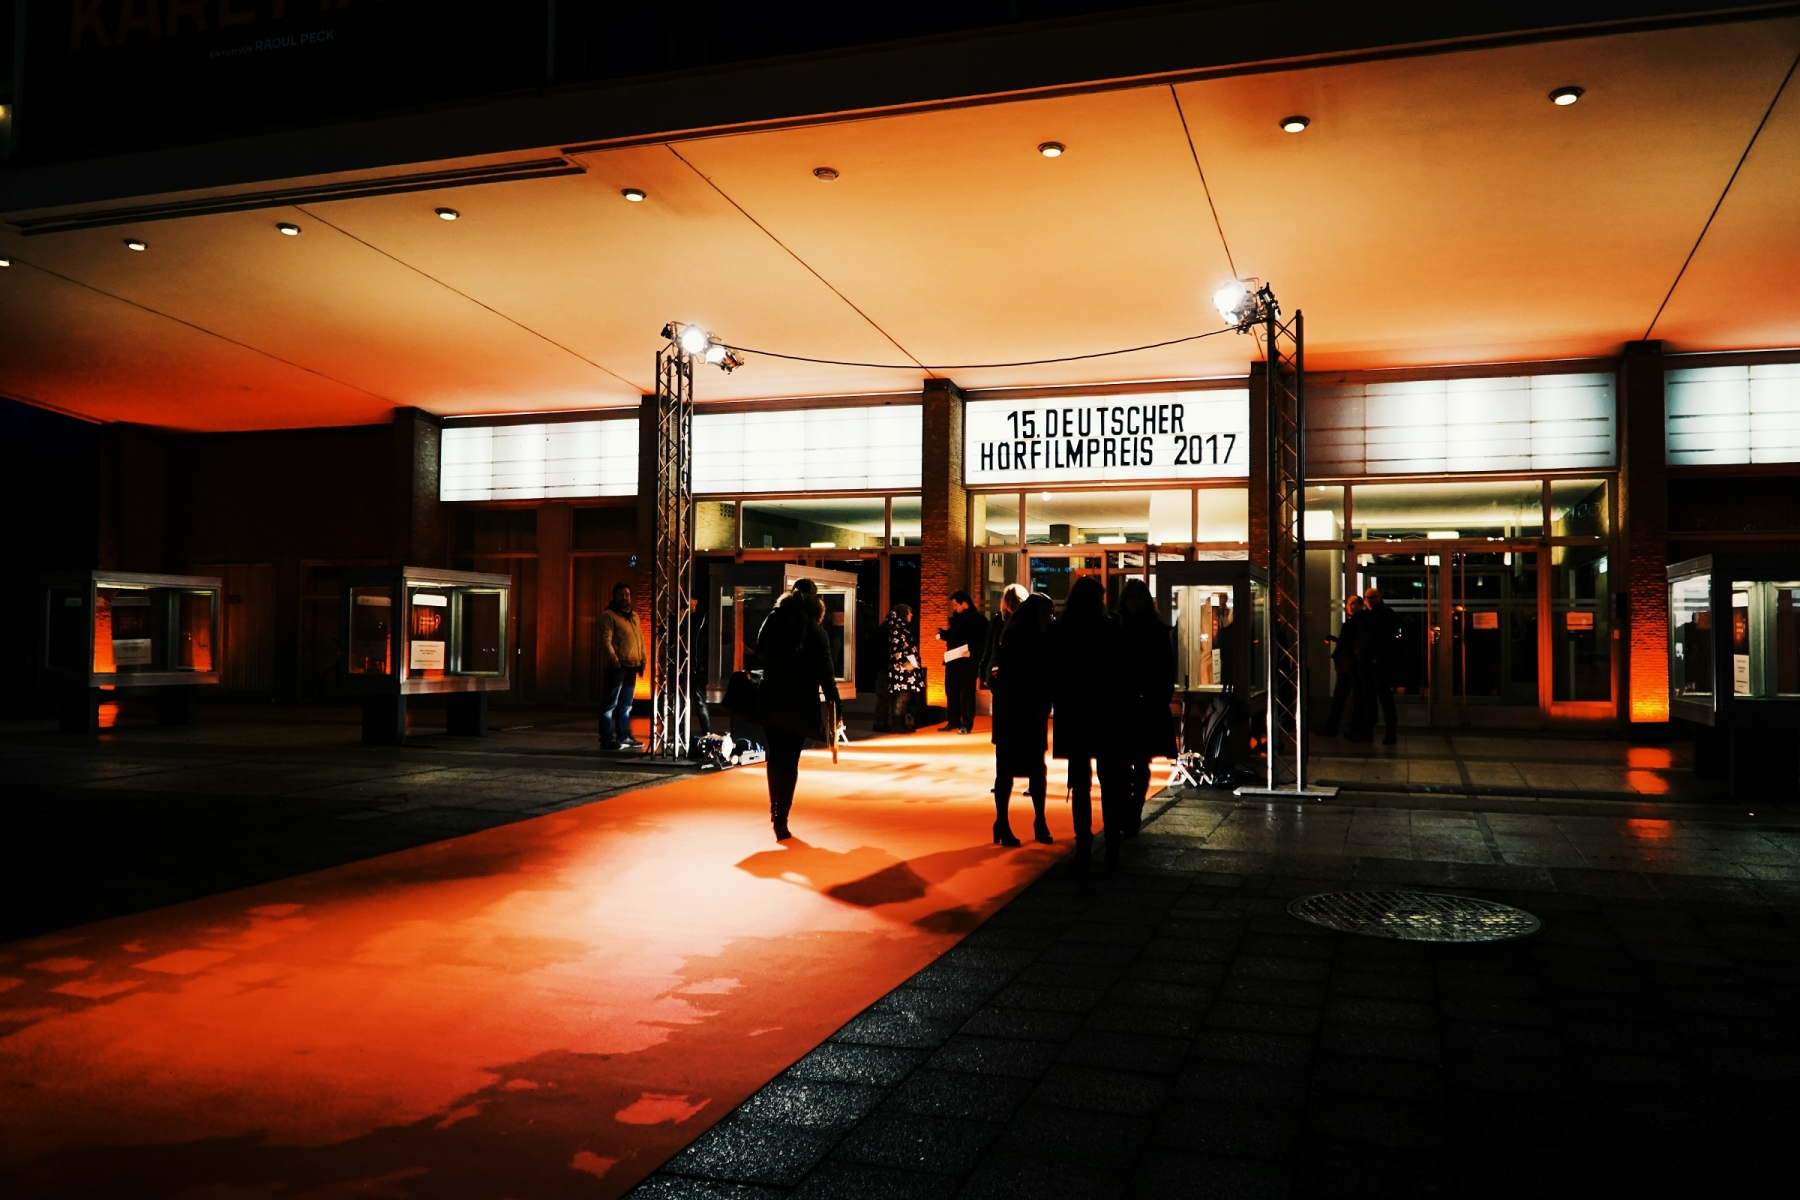 German Audio Described Film Prize in Berlin